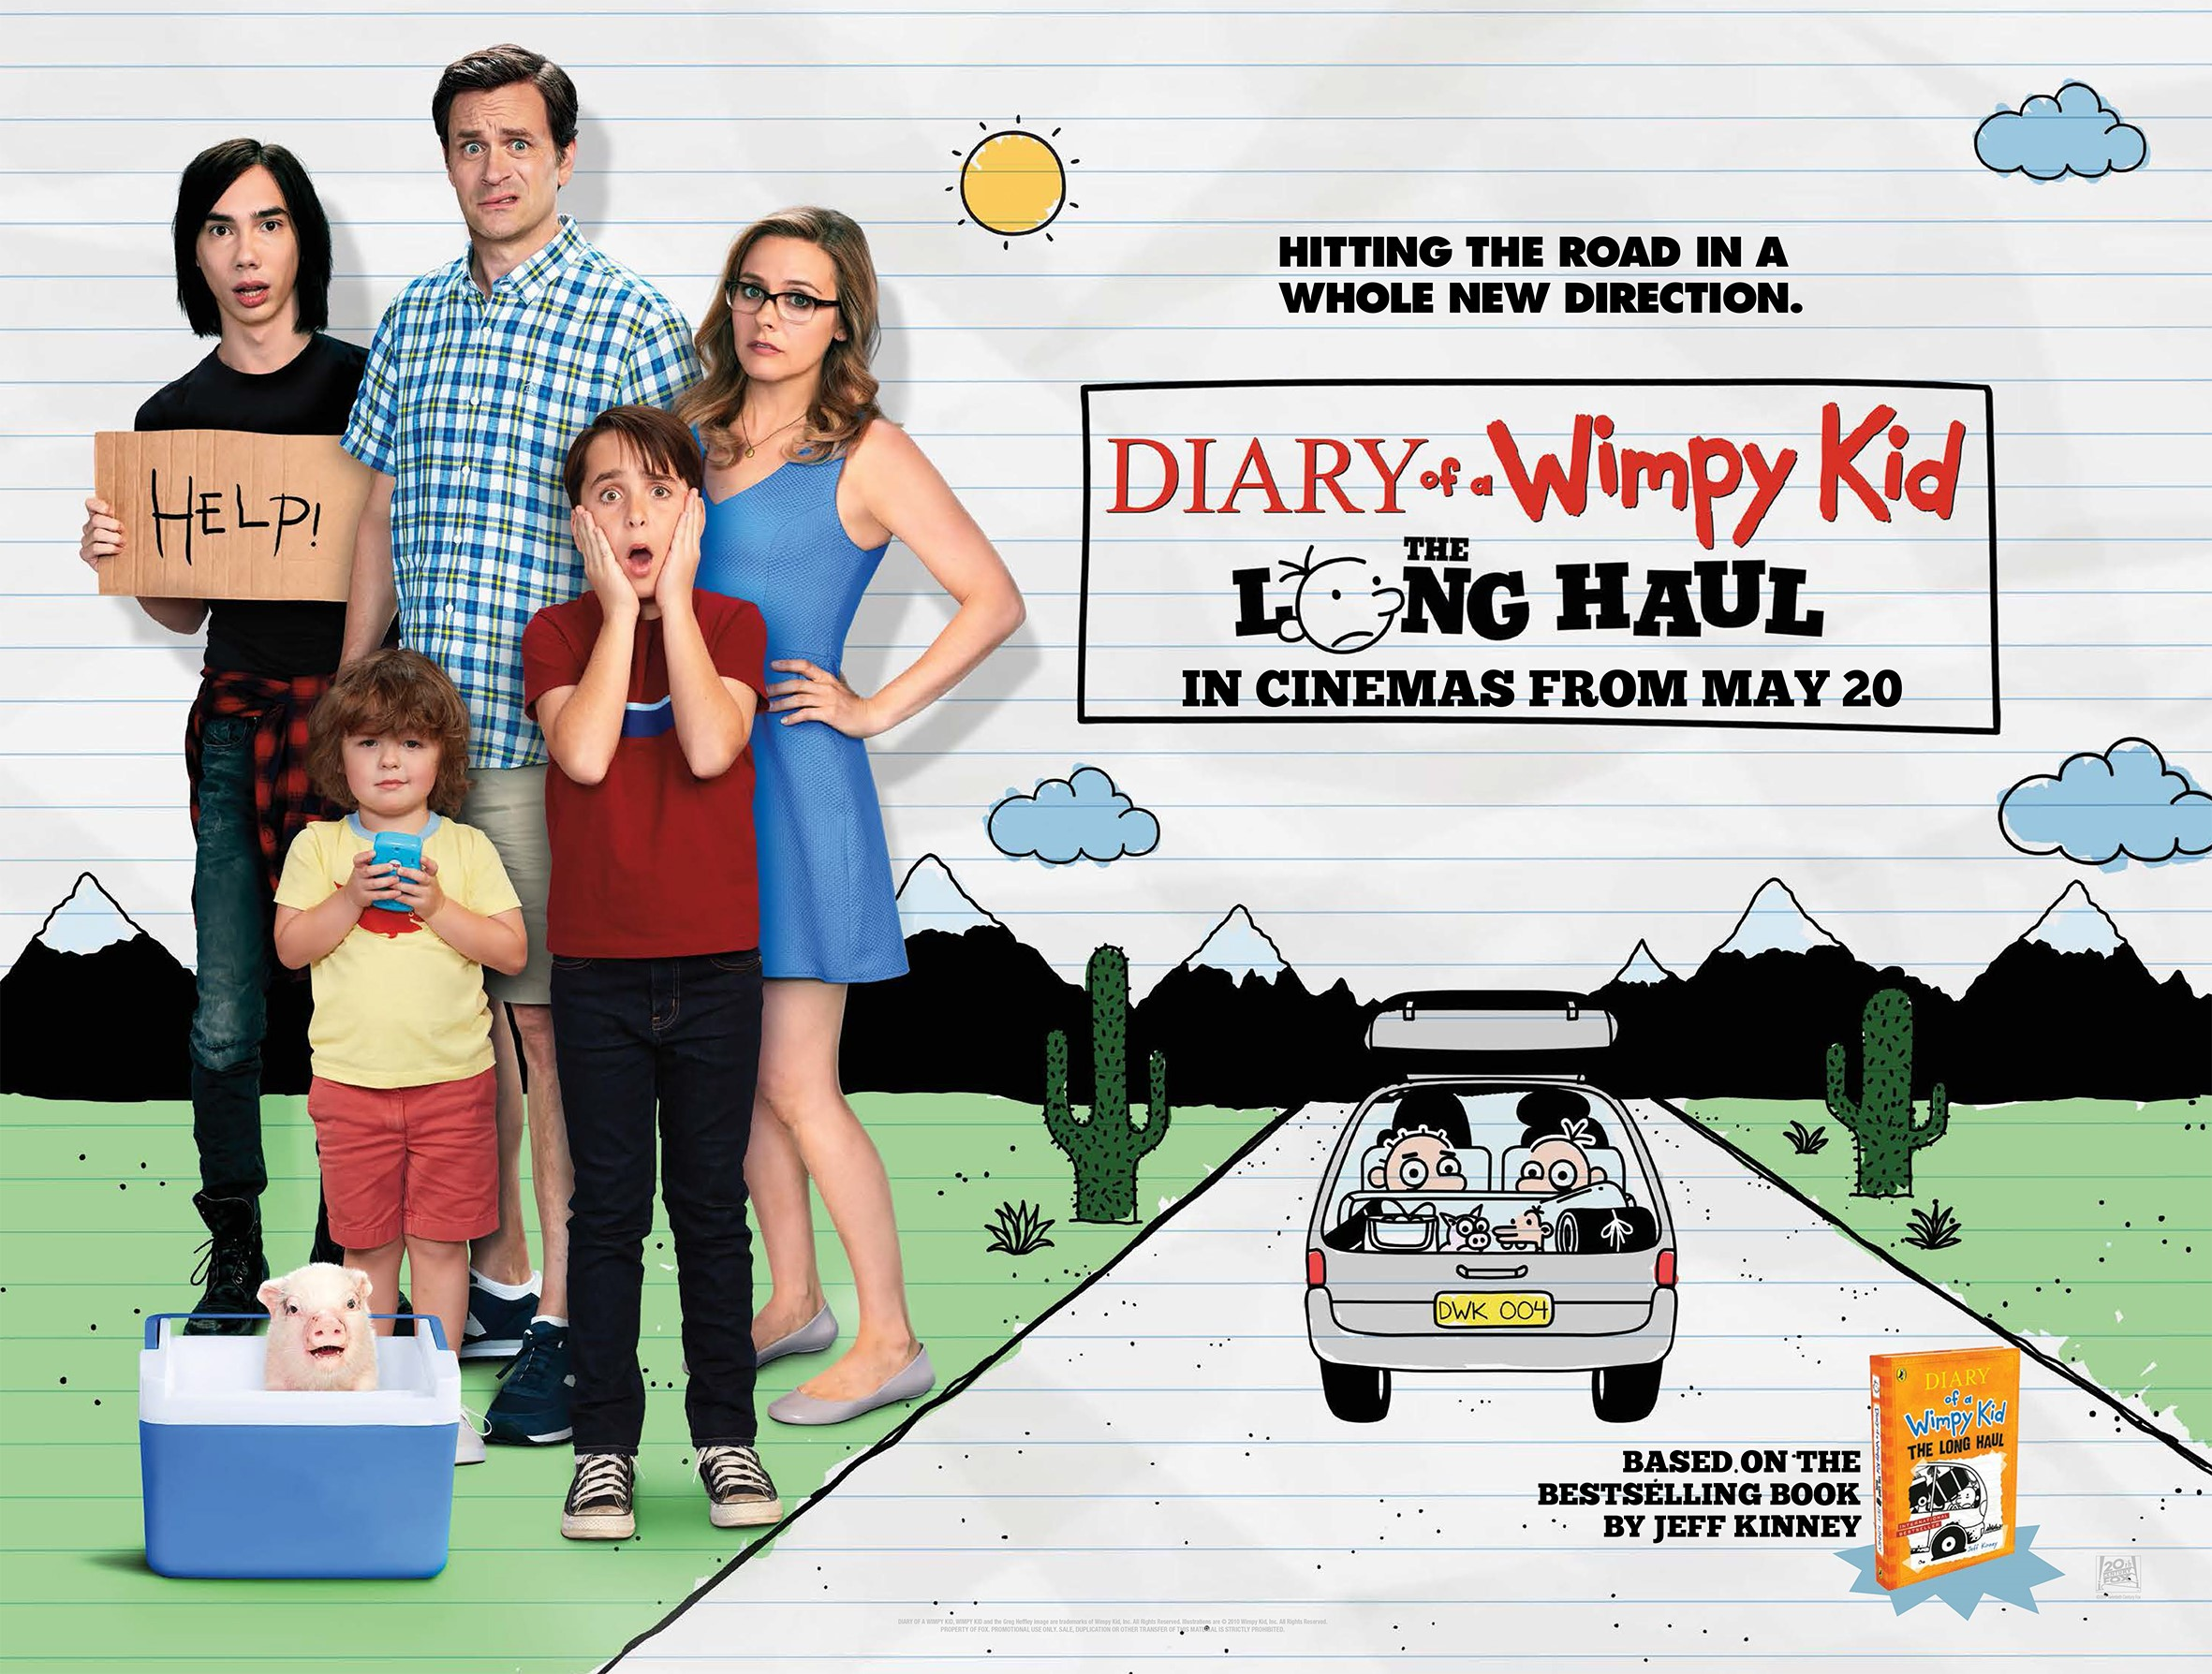 Diary of a Wimpy Kid The Long Haul Quad.jpg